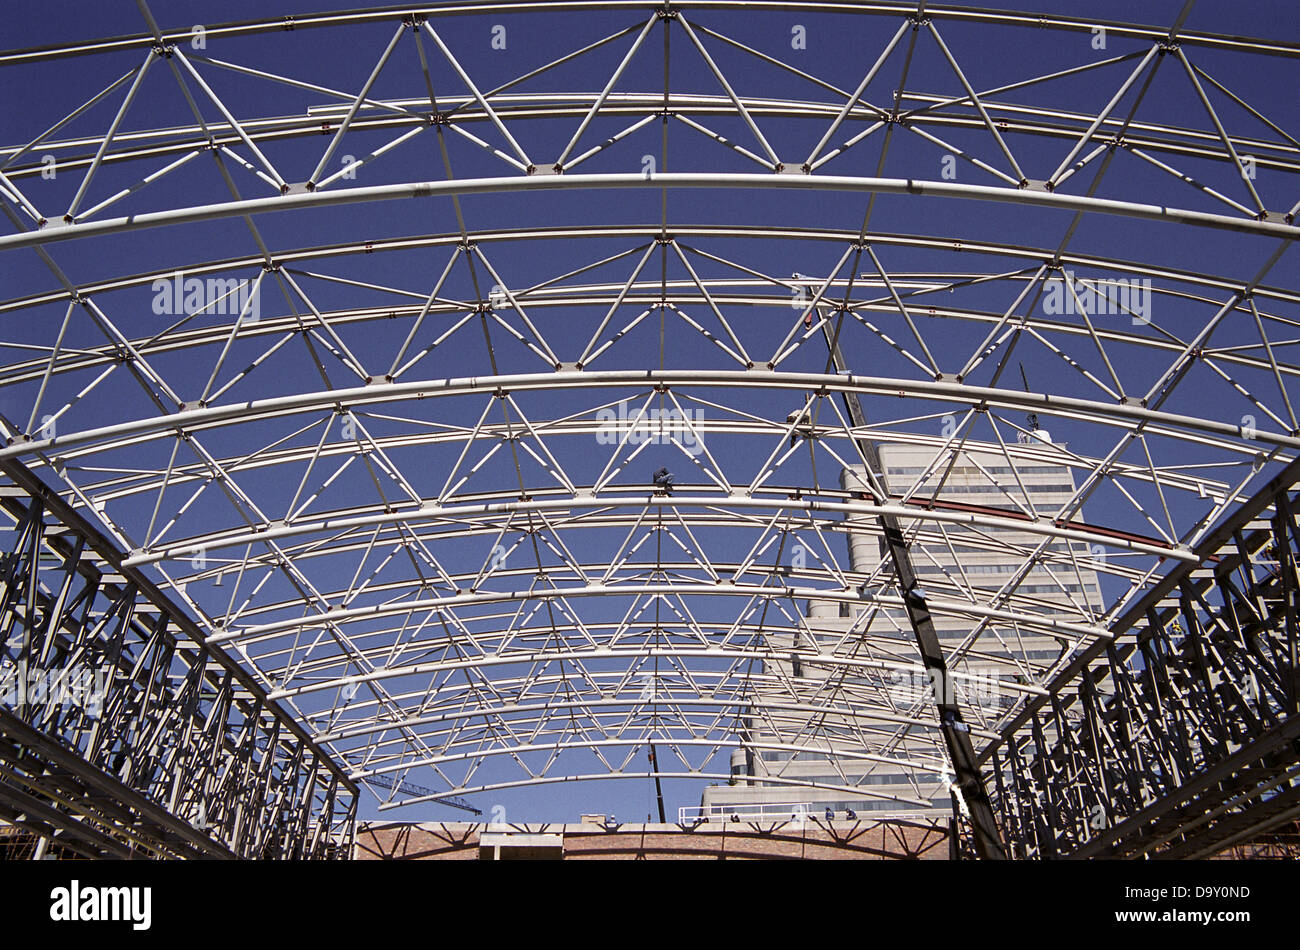 construction workers completing steel roof trusses stock image - Metal Roof Trusses